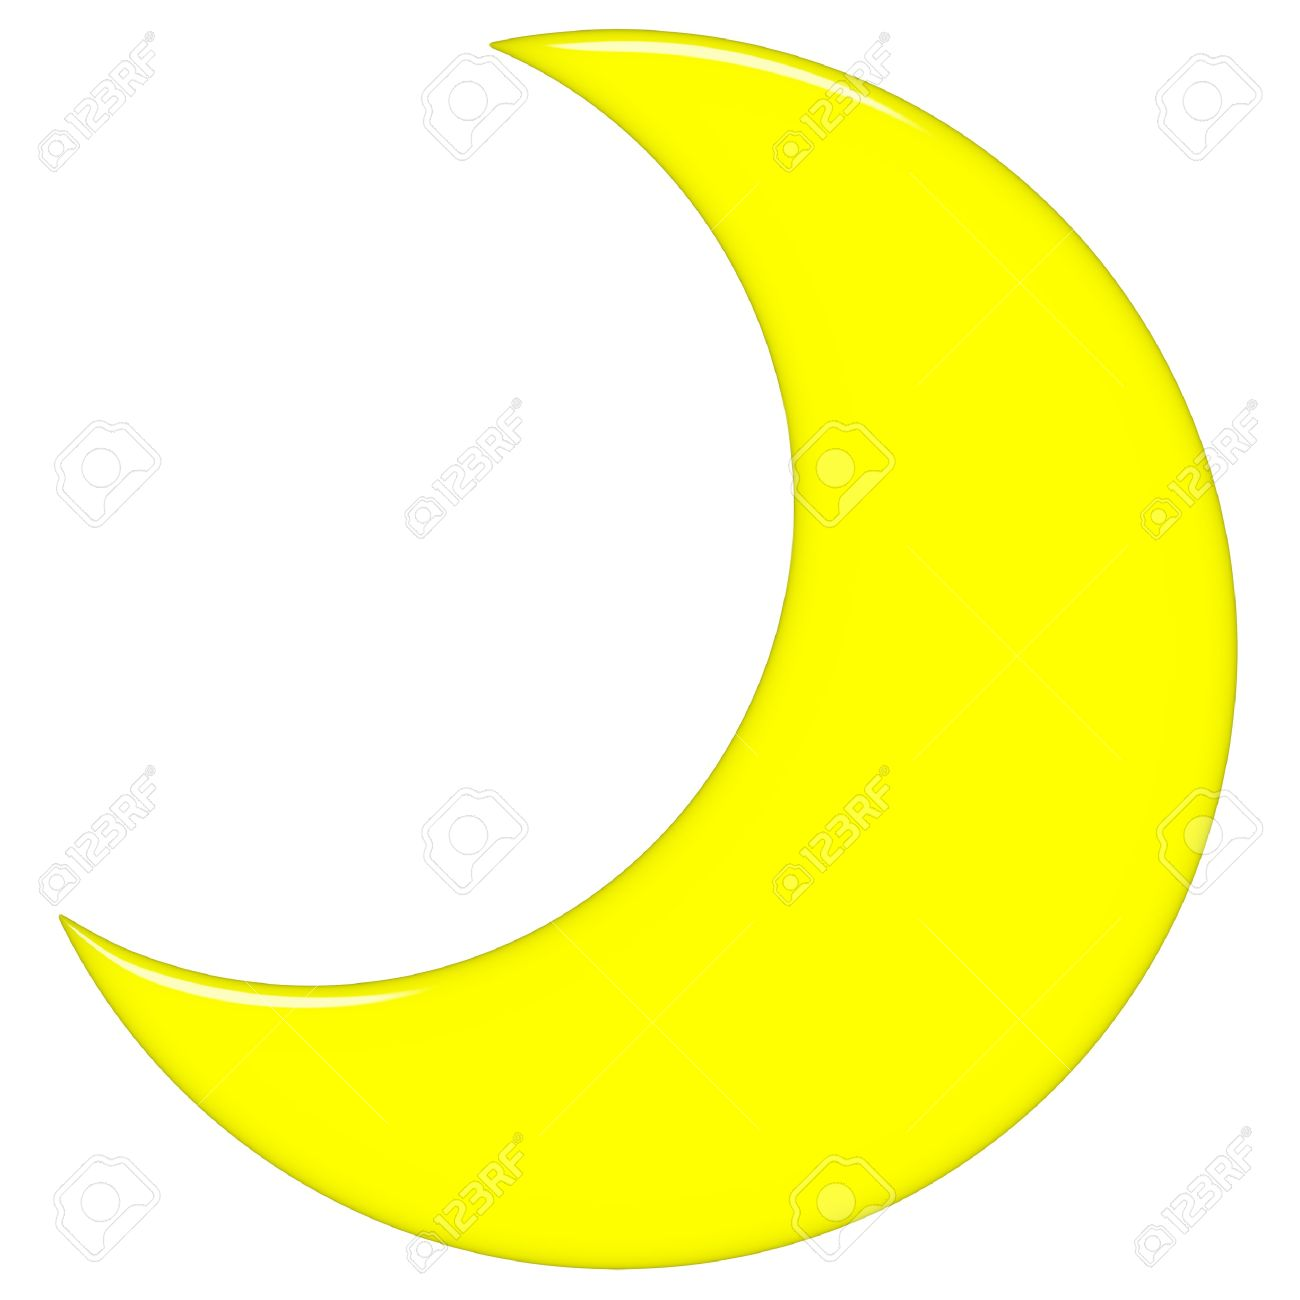 clipart image of moon - photo #46